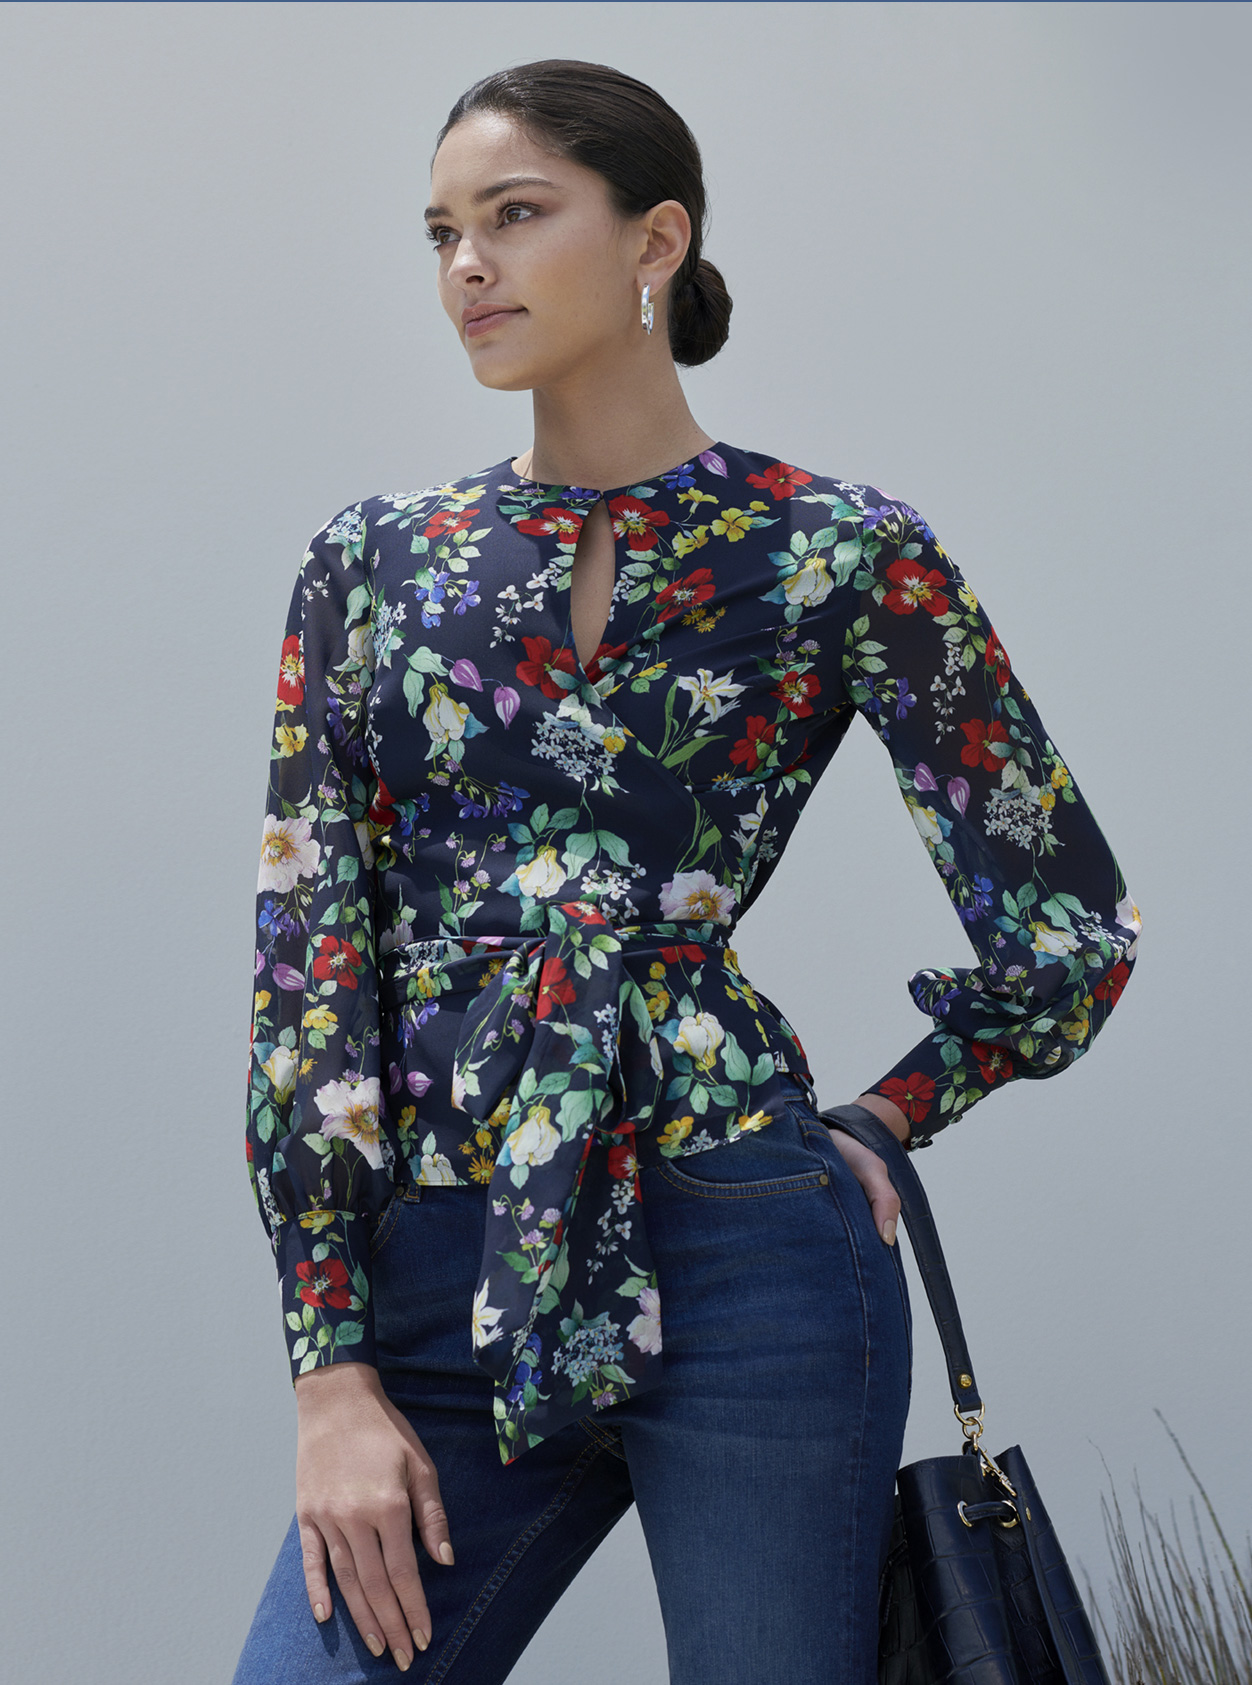 Floral blouse with waist tie detail paired with blue jeans and leather bucket bag by Hobbs.